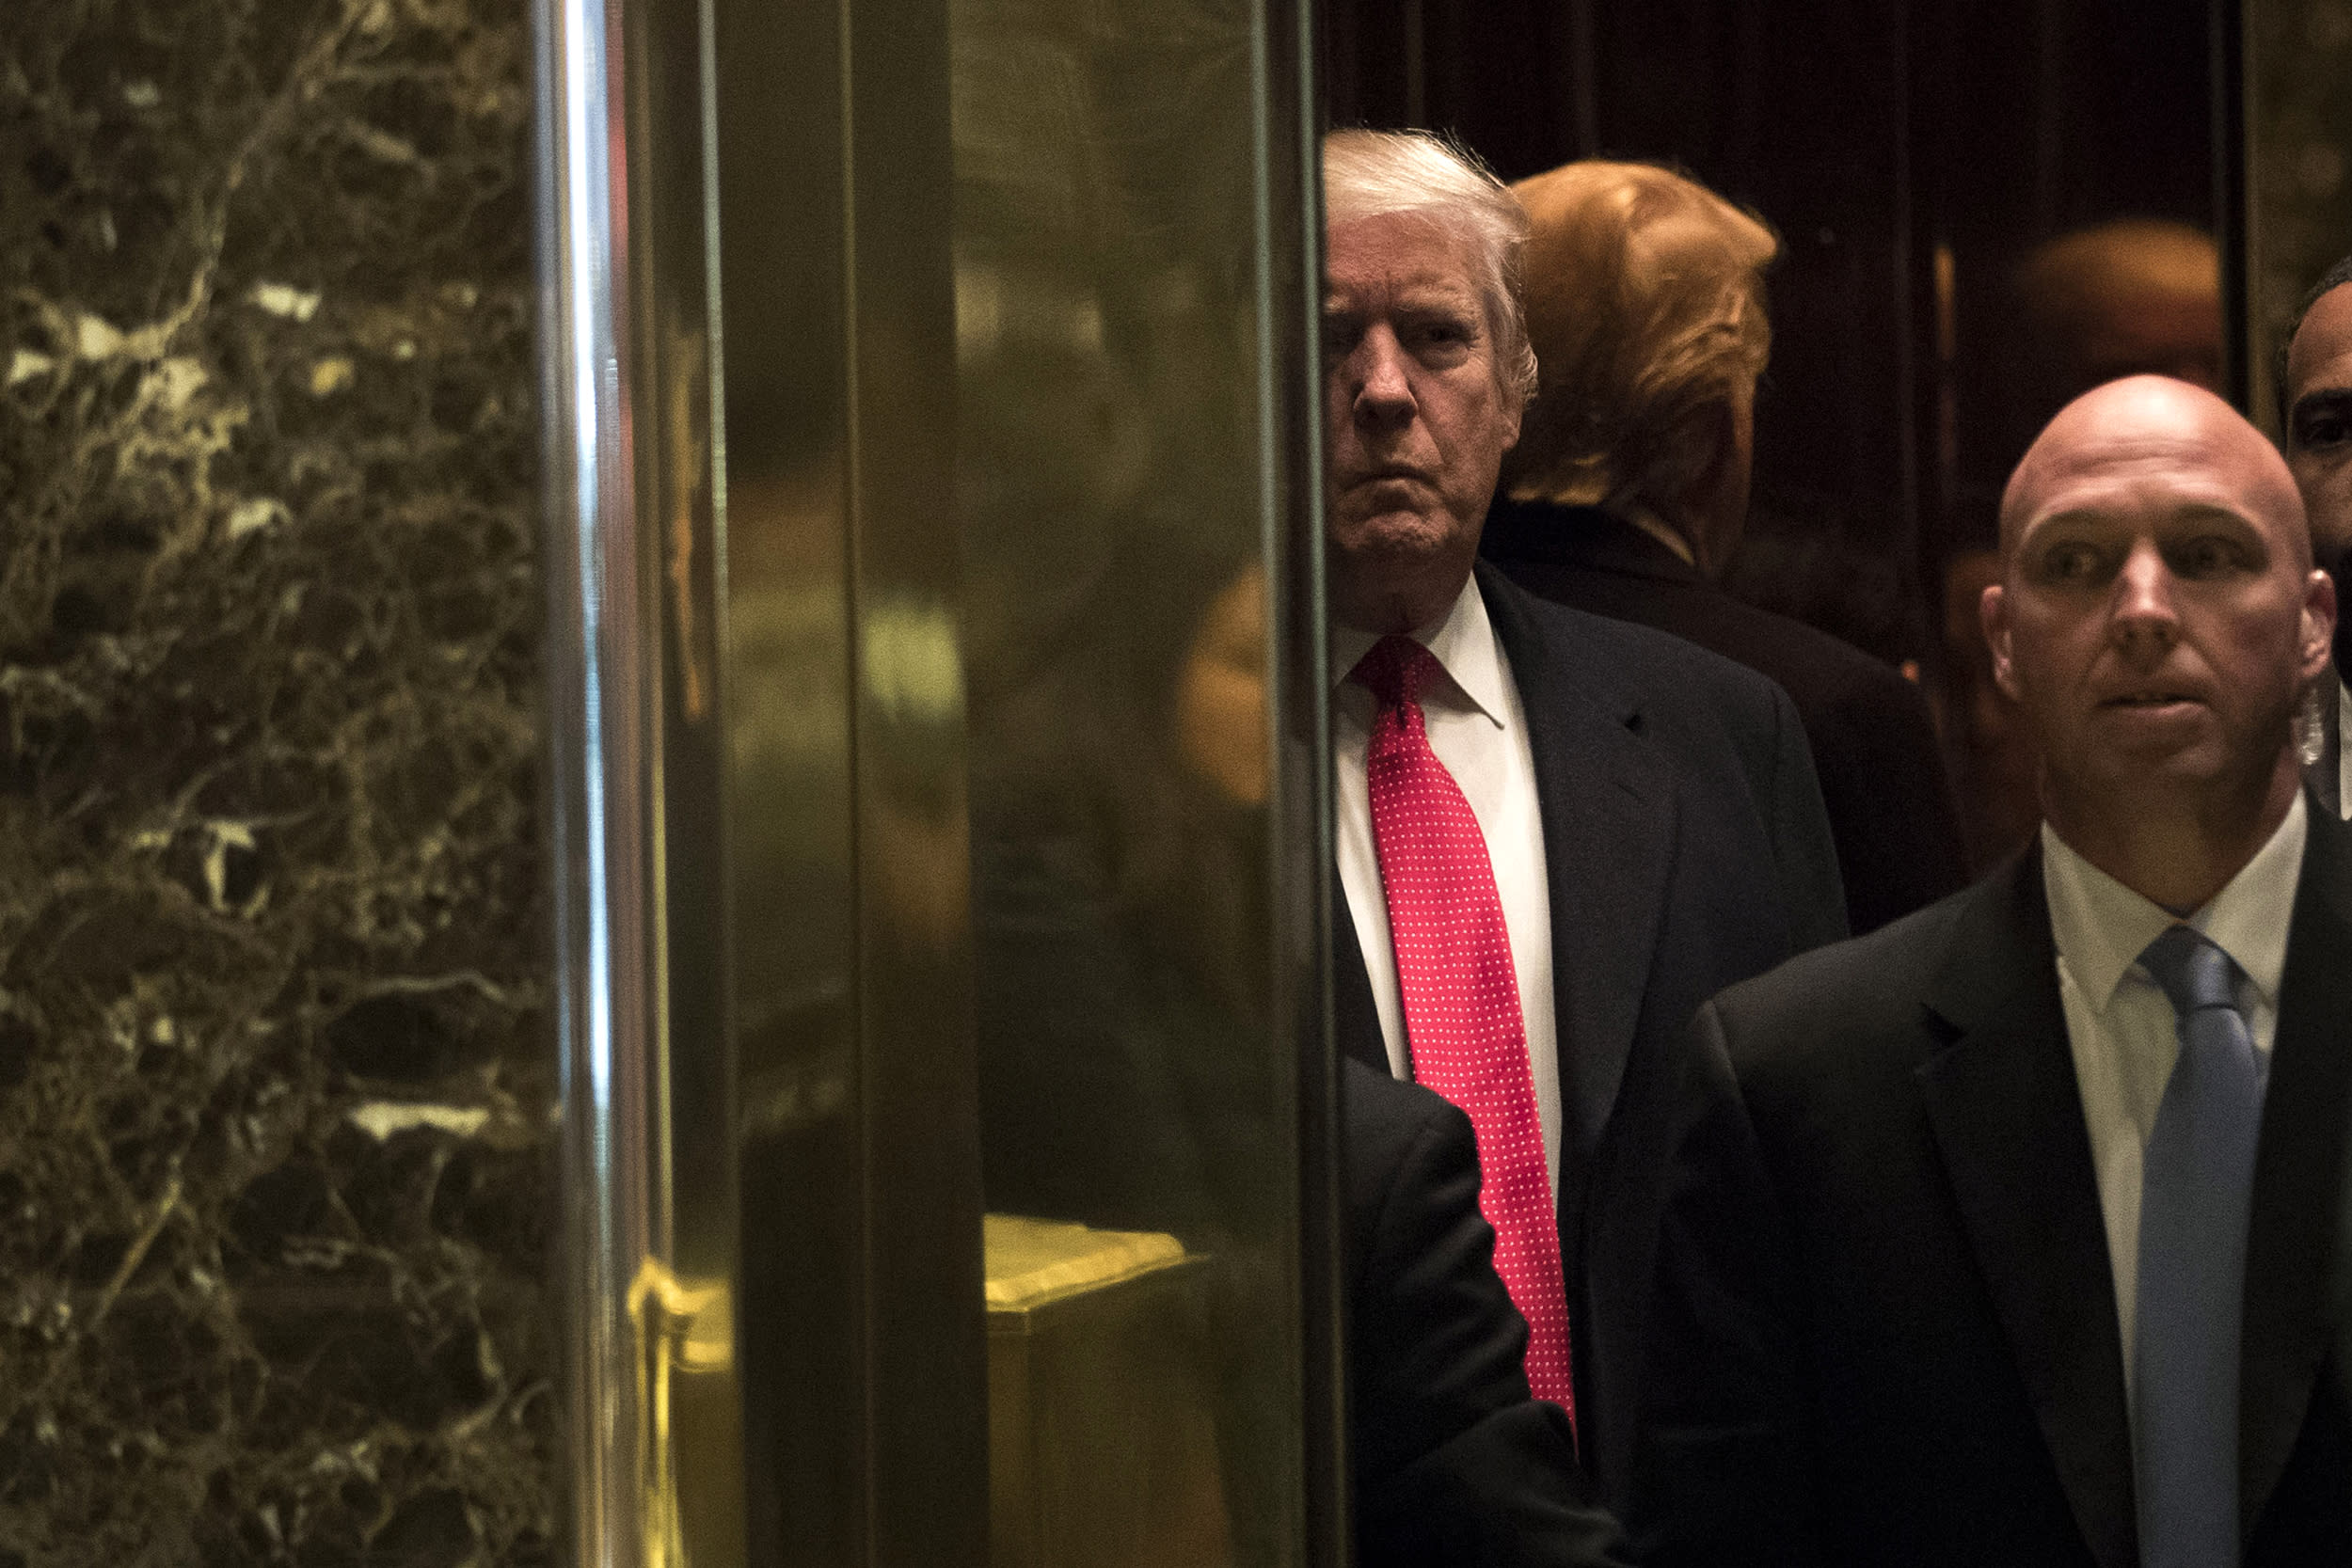 Trump transition agrees to shut down, State Dept. official fined